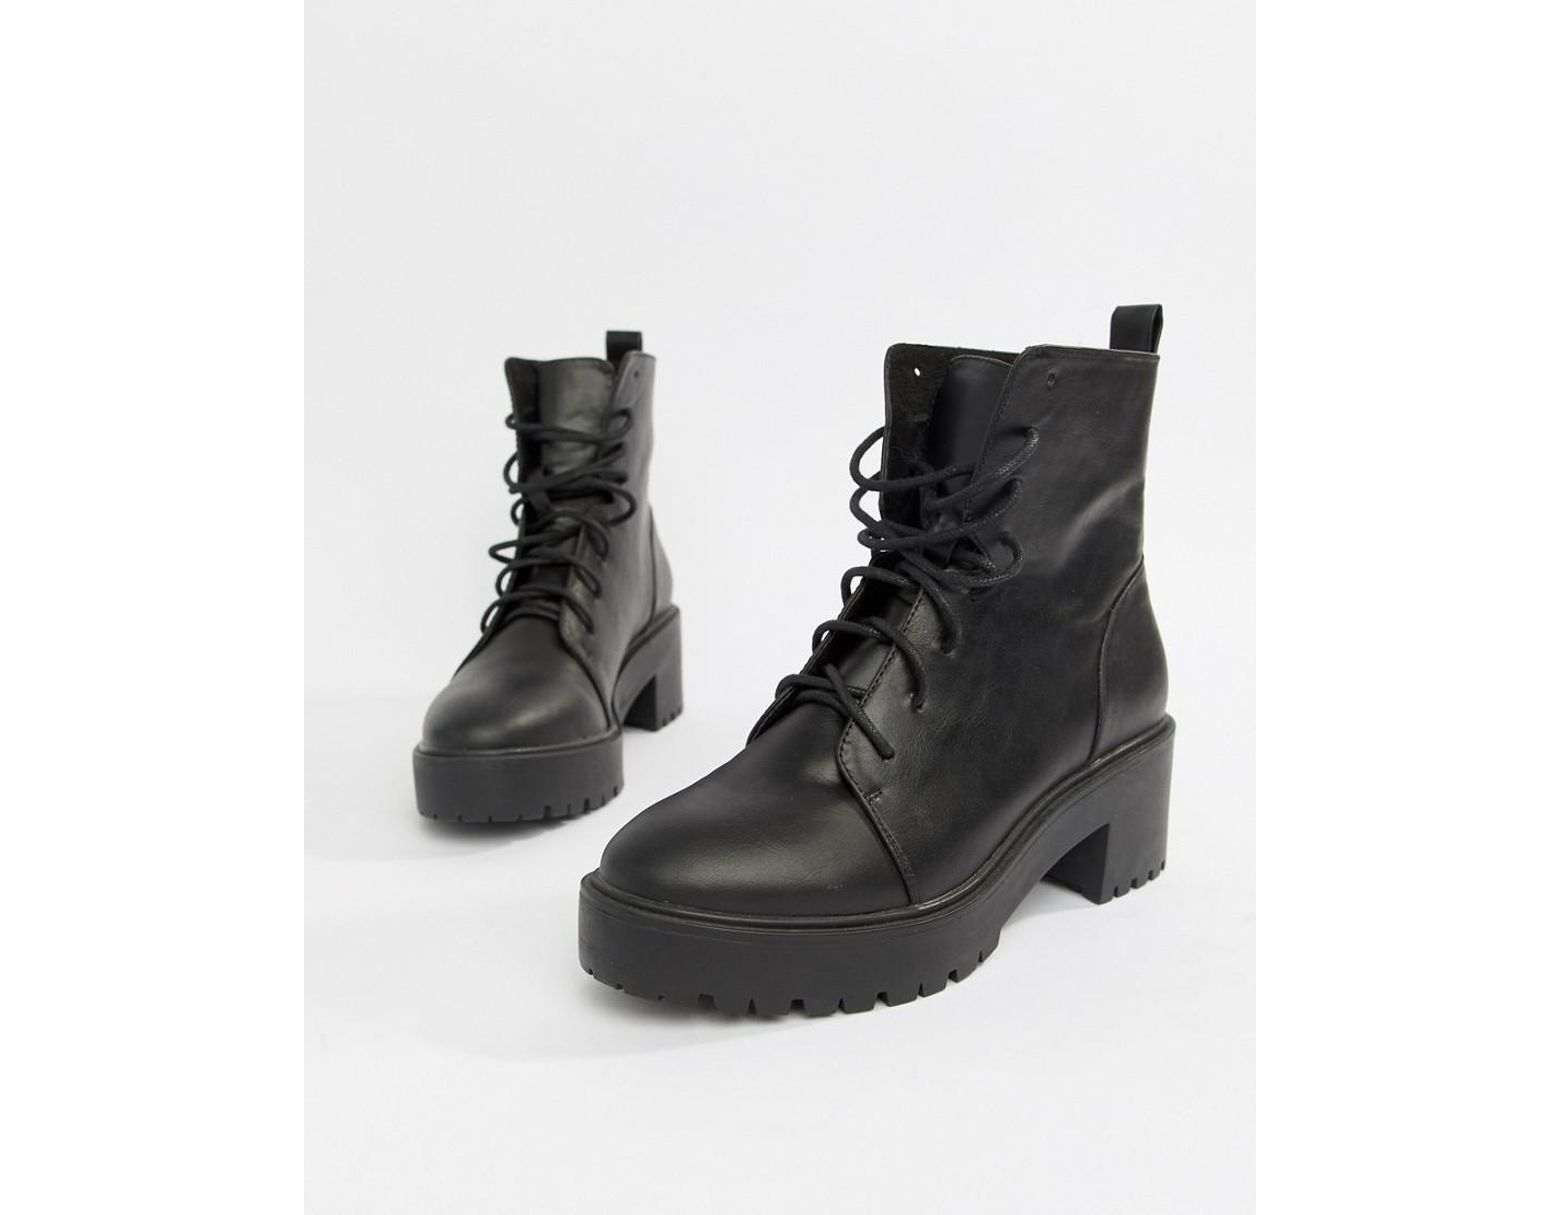 11b89e1a7c0 ASOS Raider Chunky Lace Up Boots in Black - Lyst